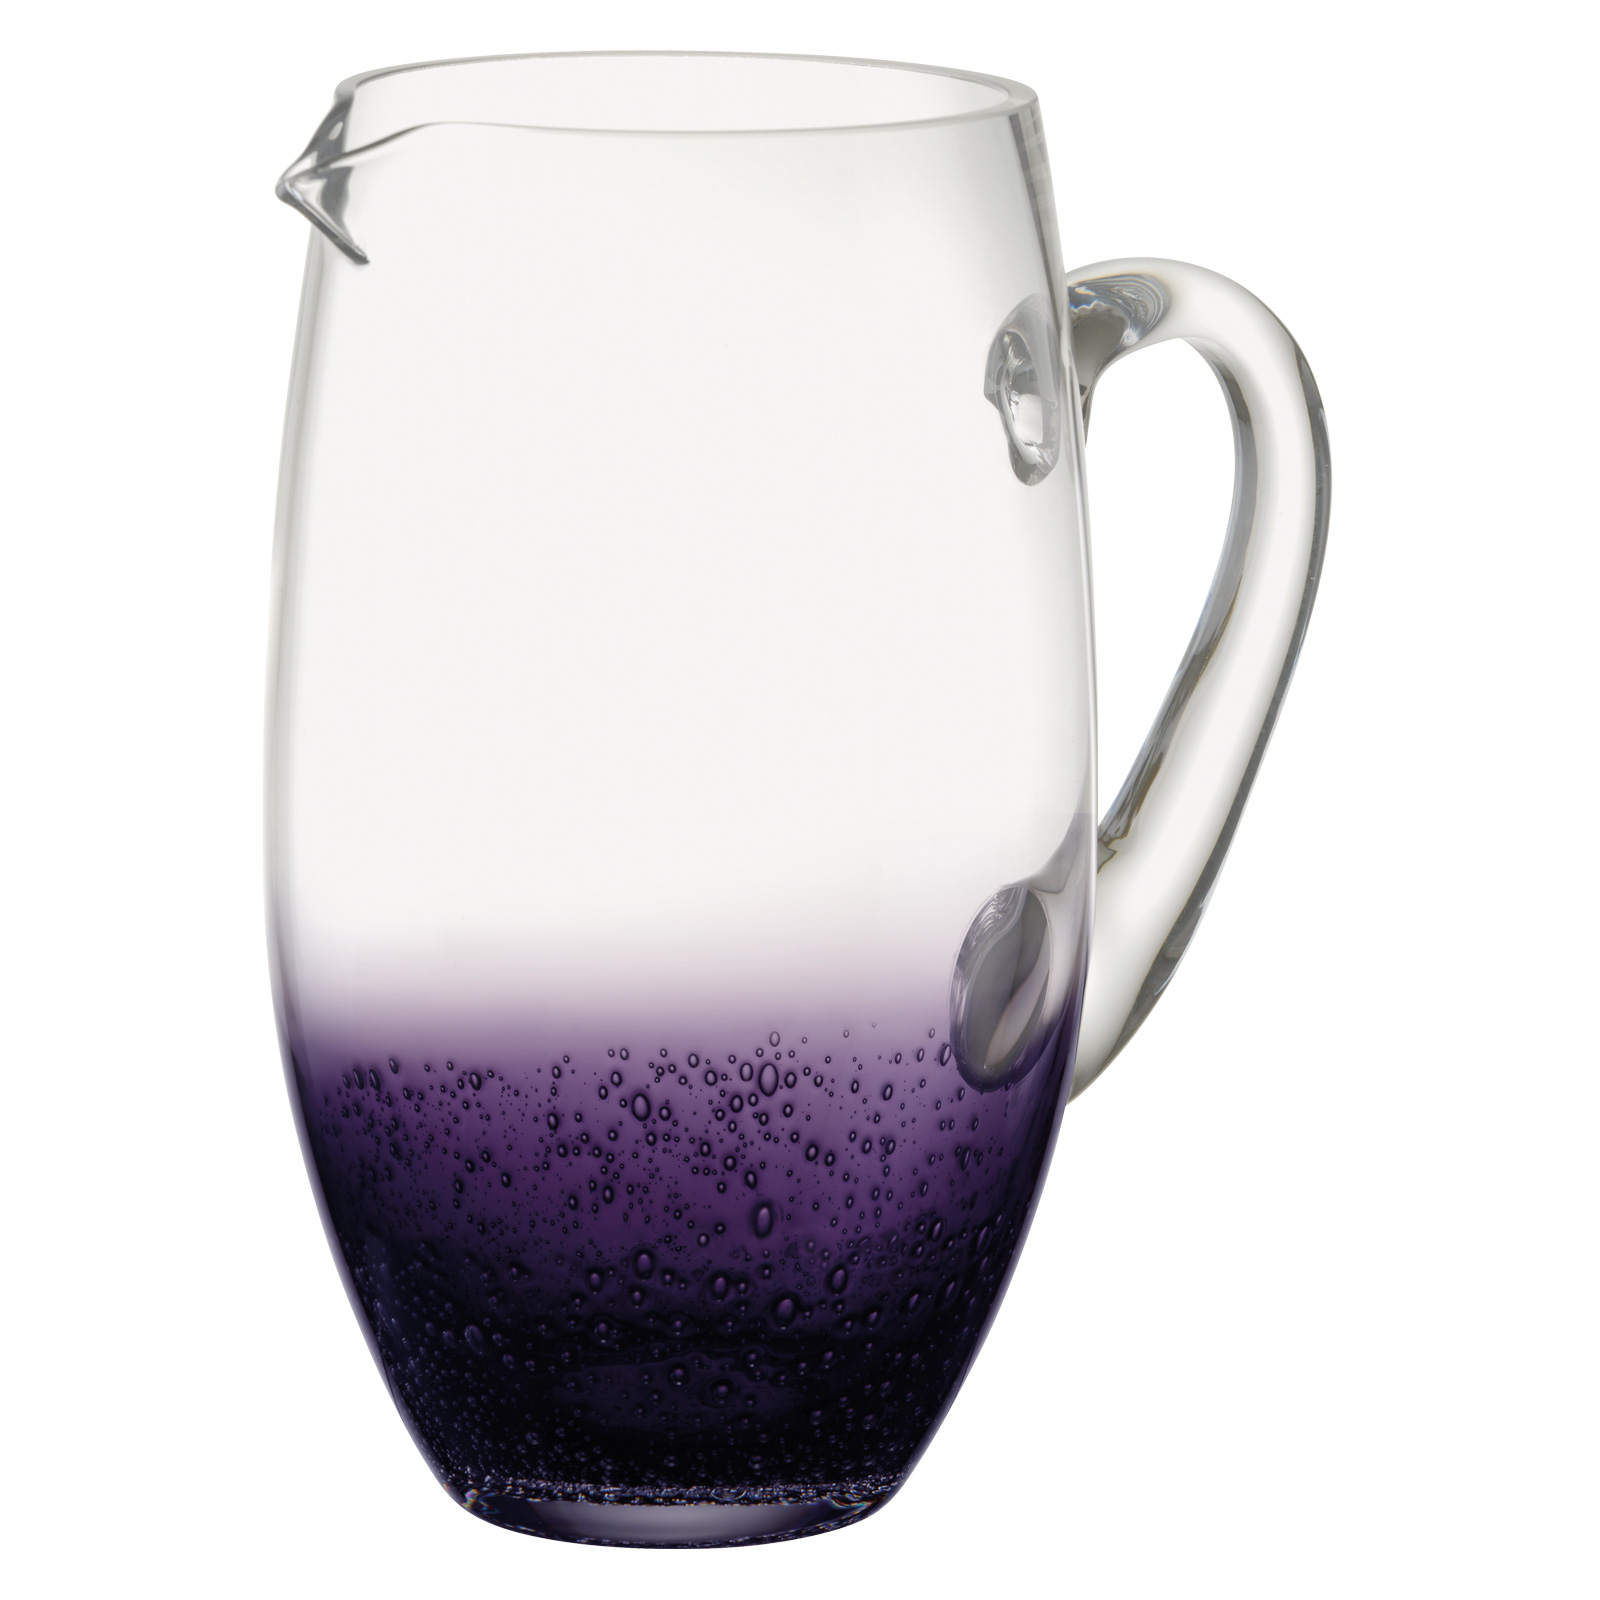 Fizz Jug Purple by Anton Studio Designs